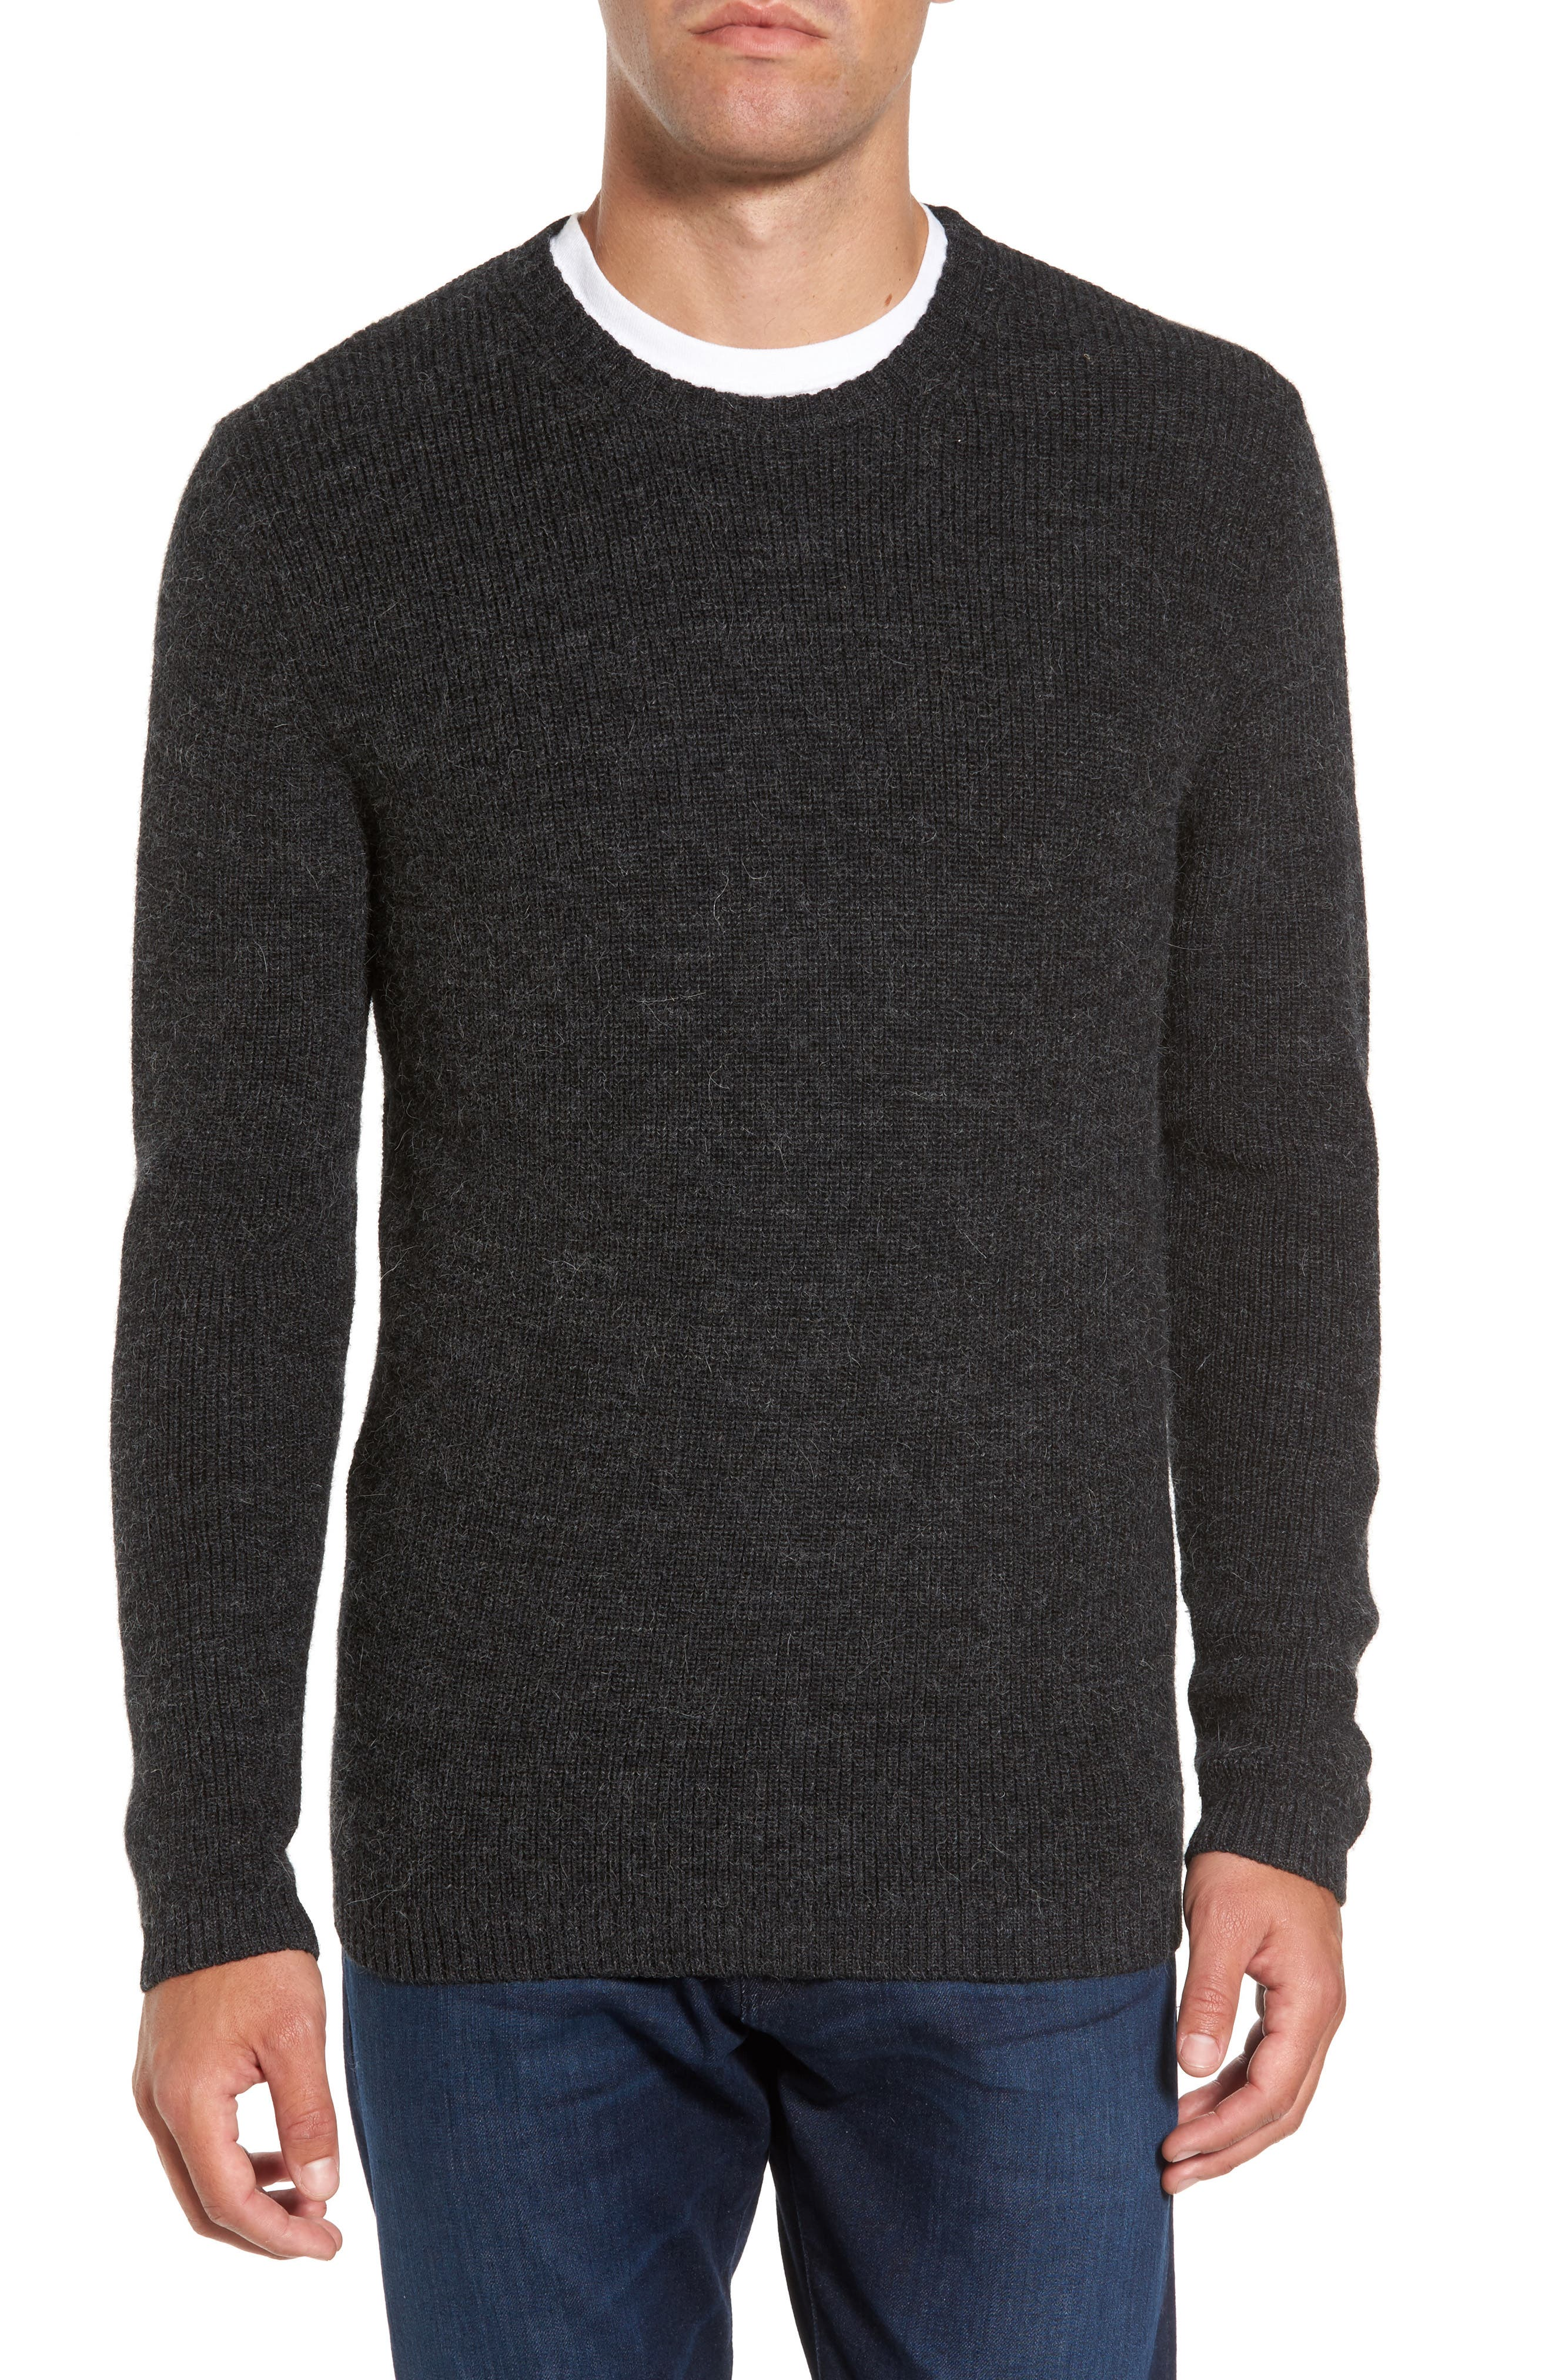 Whalers Bay Merino Wool Blend Sweater,                             Main thumbnail 1, color,                             Onyx